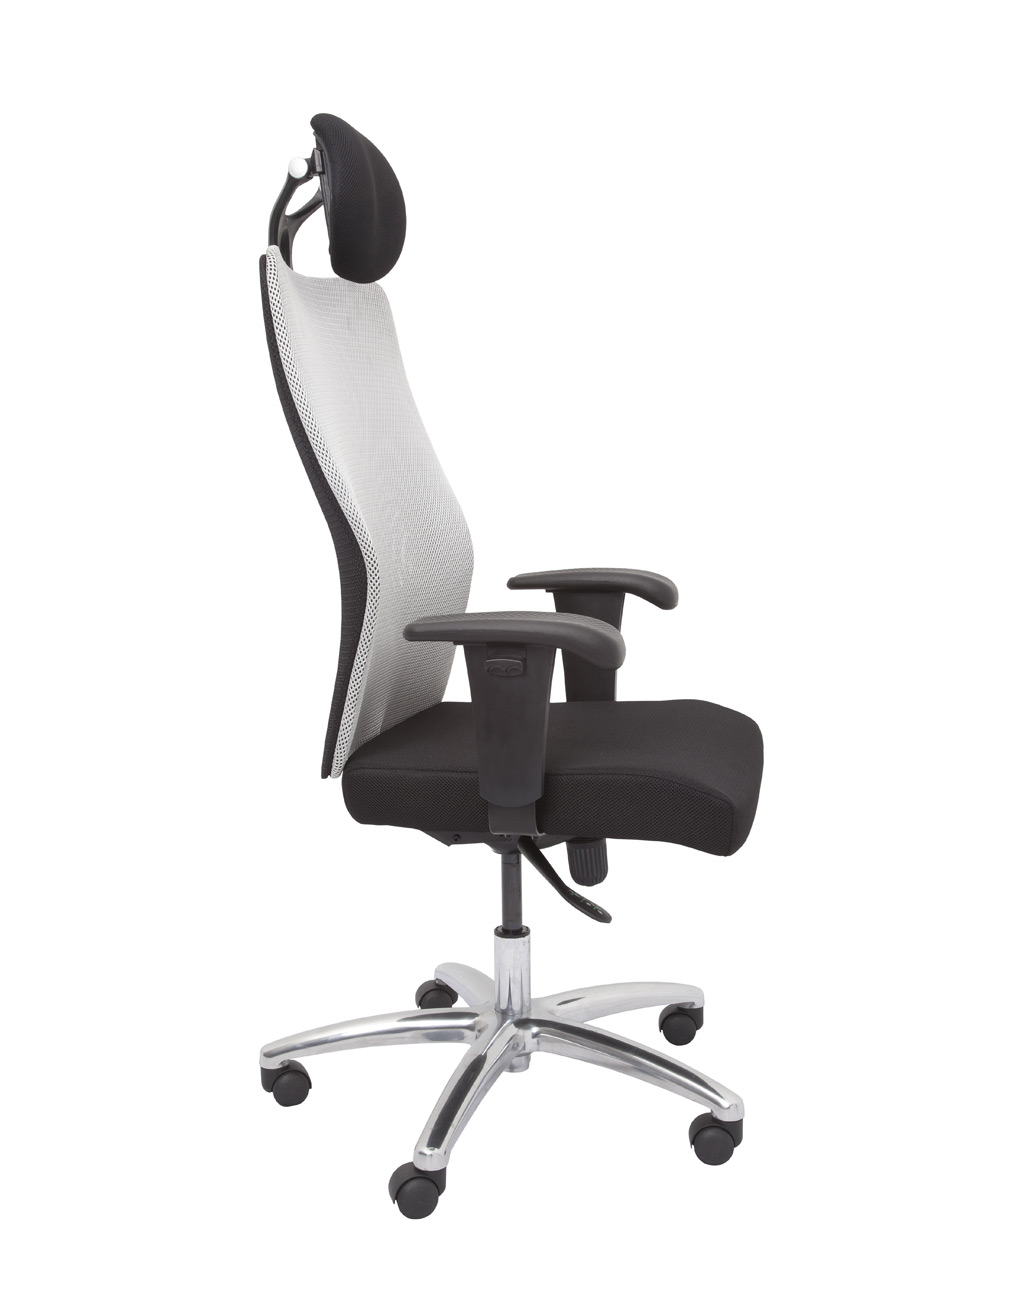 Maxeo Mesh Back Office Chair Epic Office Furniture